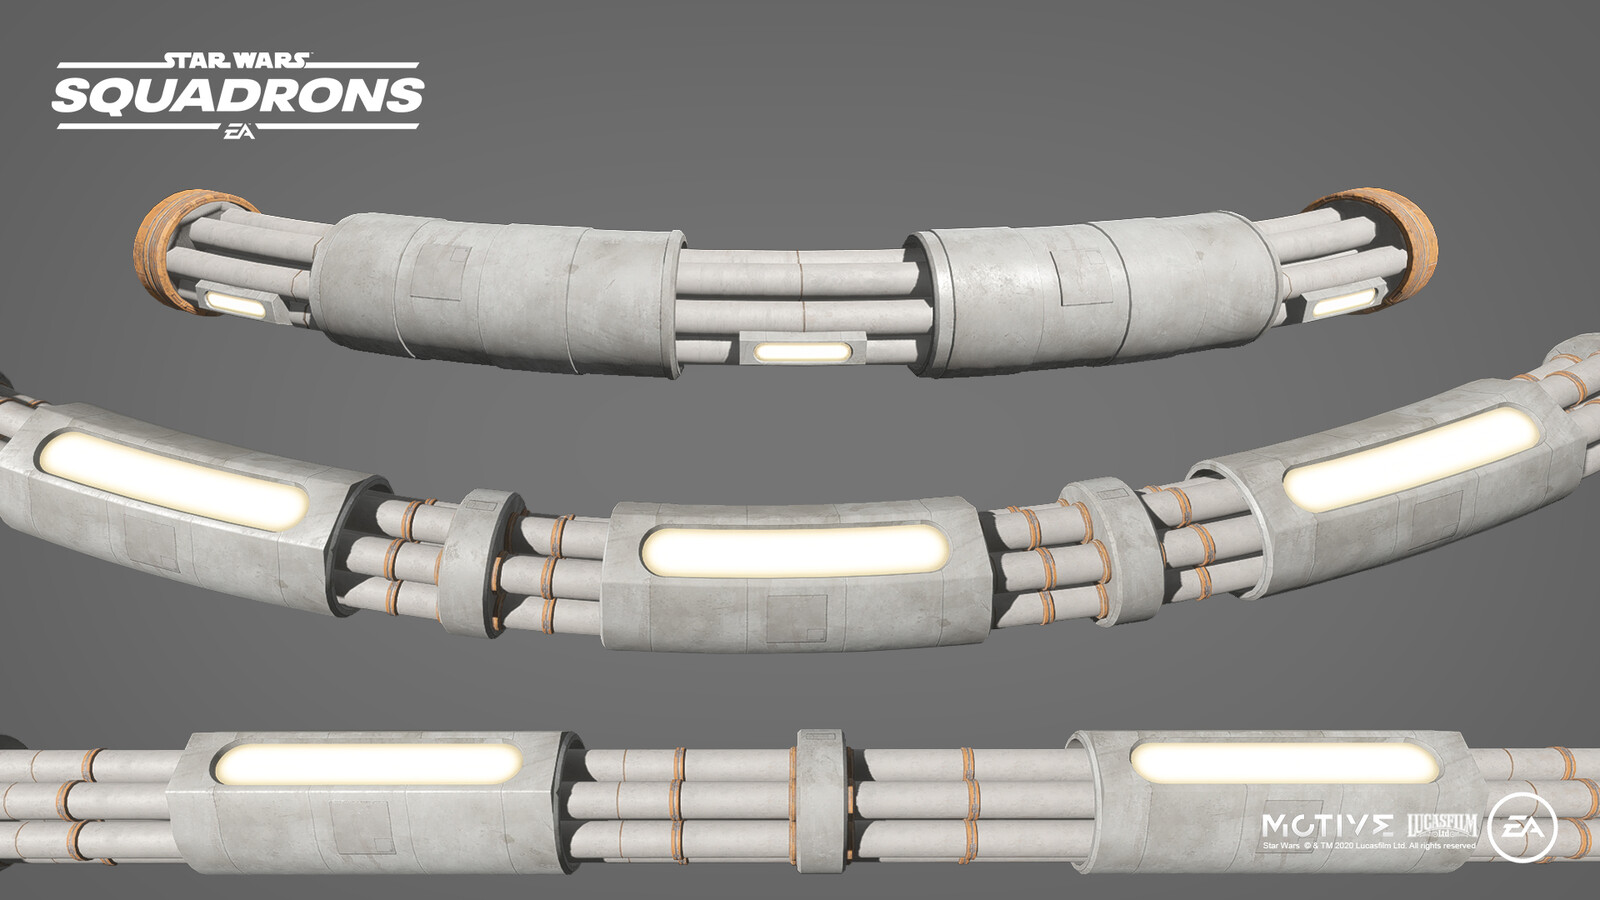 Excavation tunnels pipes kit for Fostar Haven